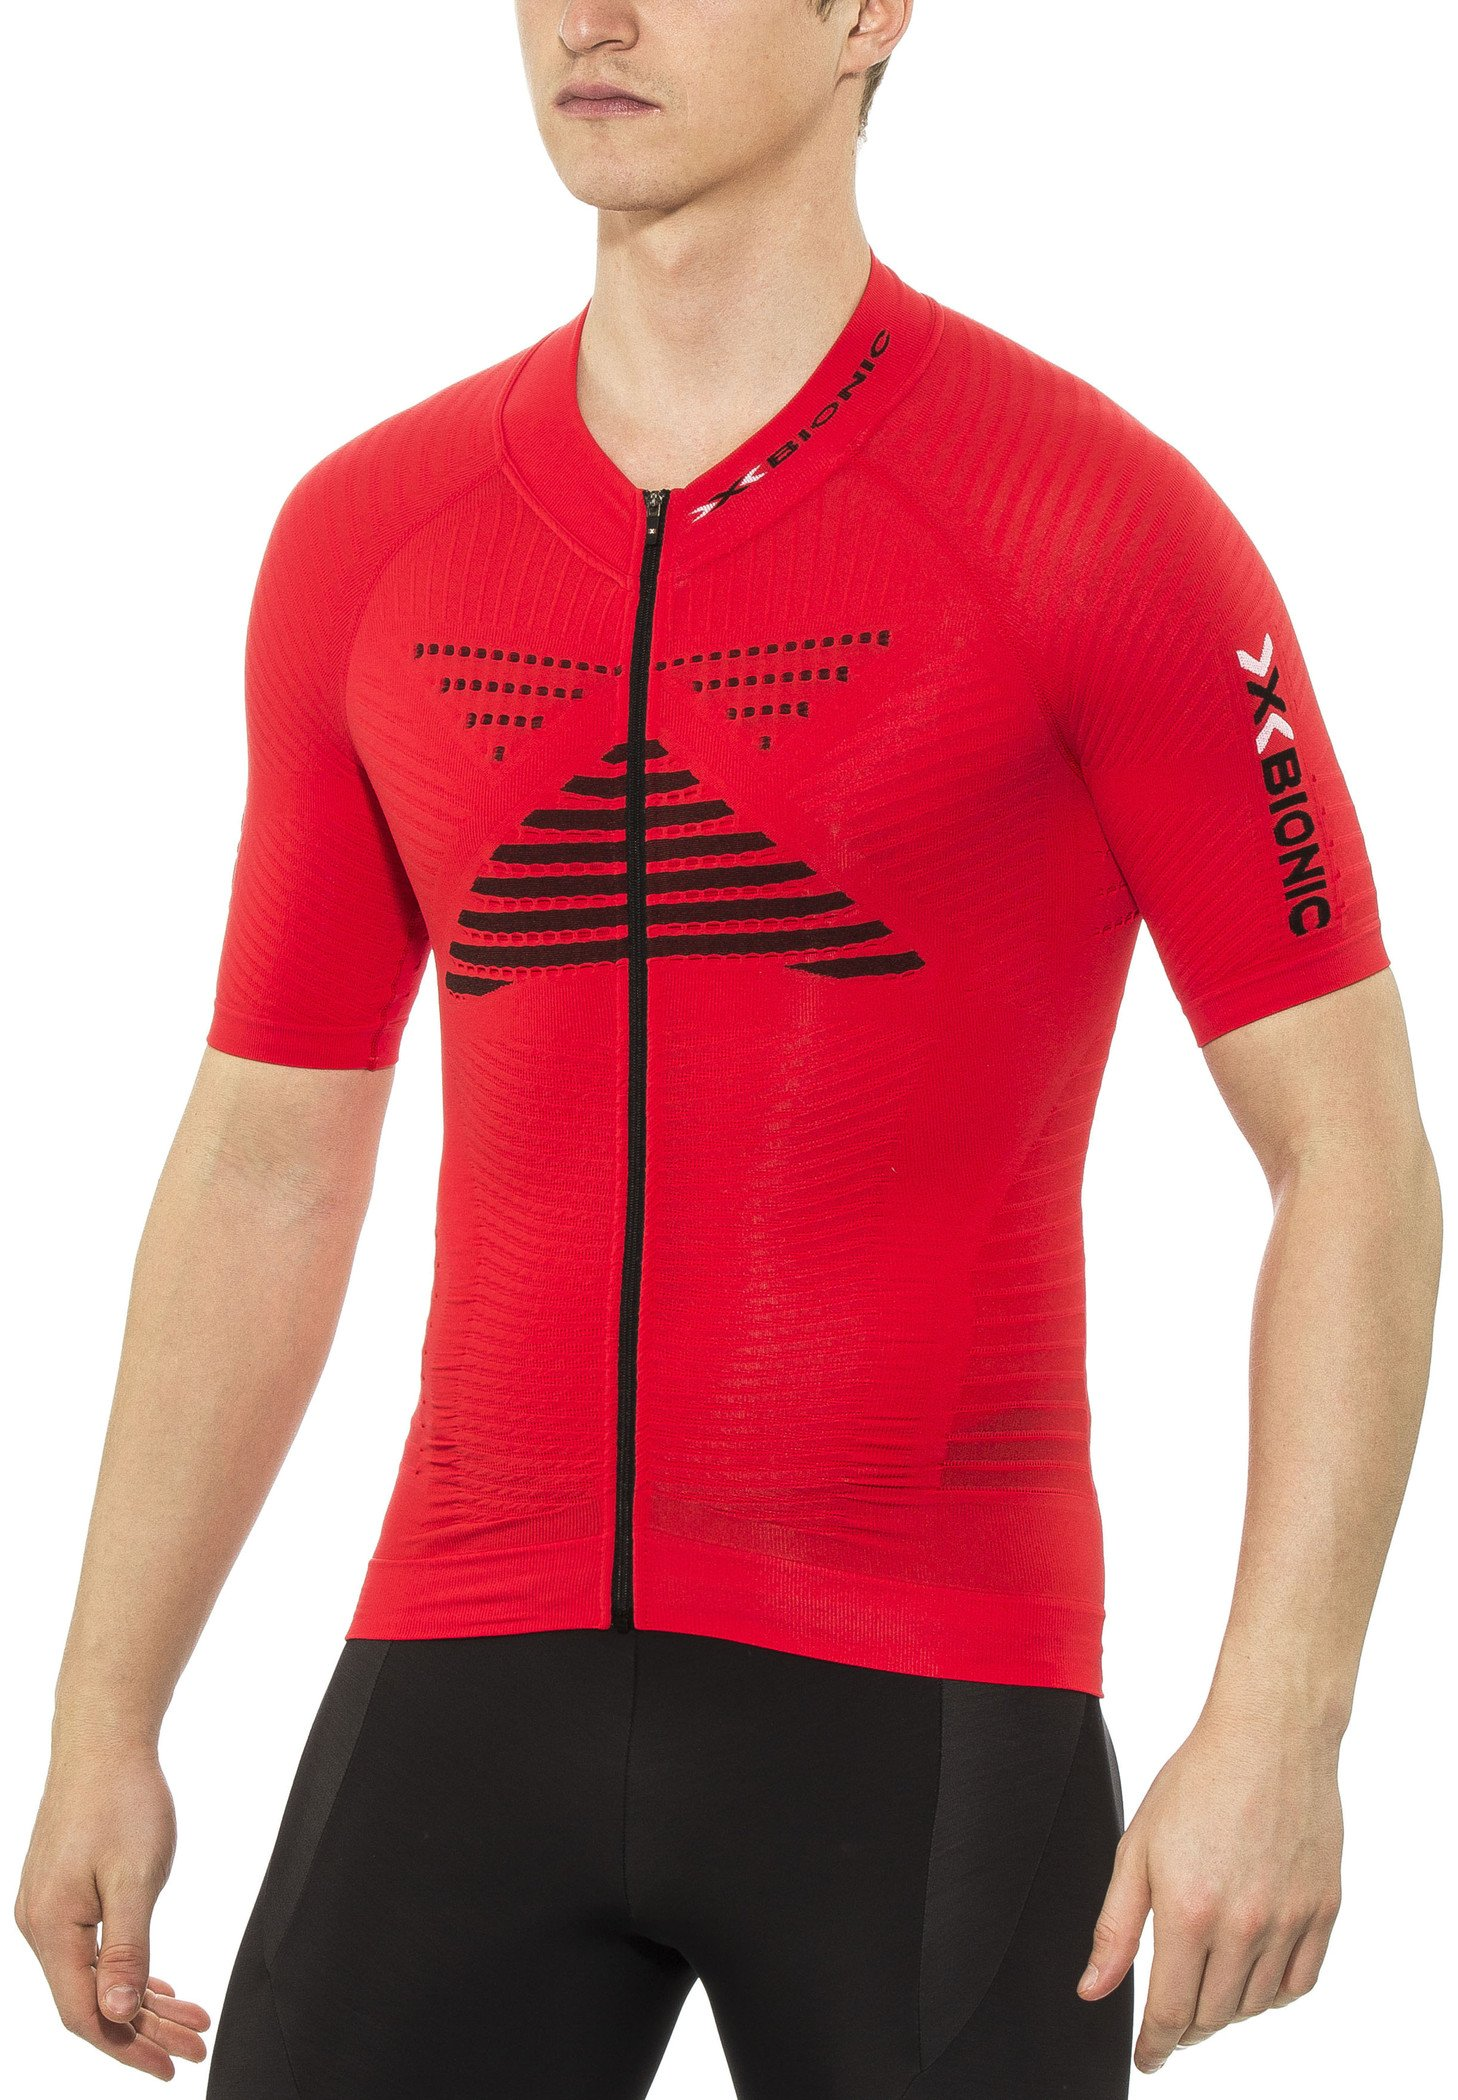 newest 95275 e6cb0 X-Bionic Effektor Power OW Sh_SL. Full Zip, Maglia ...